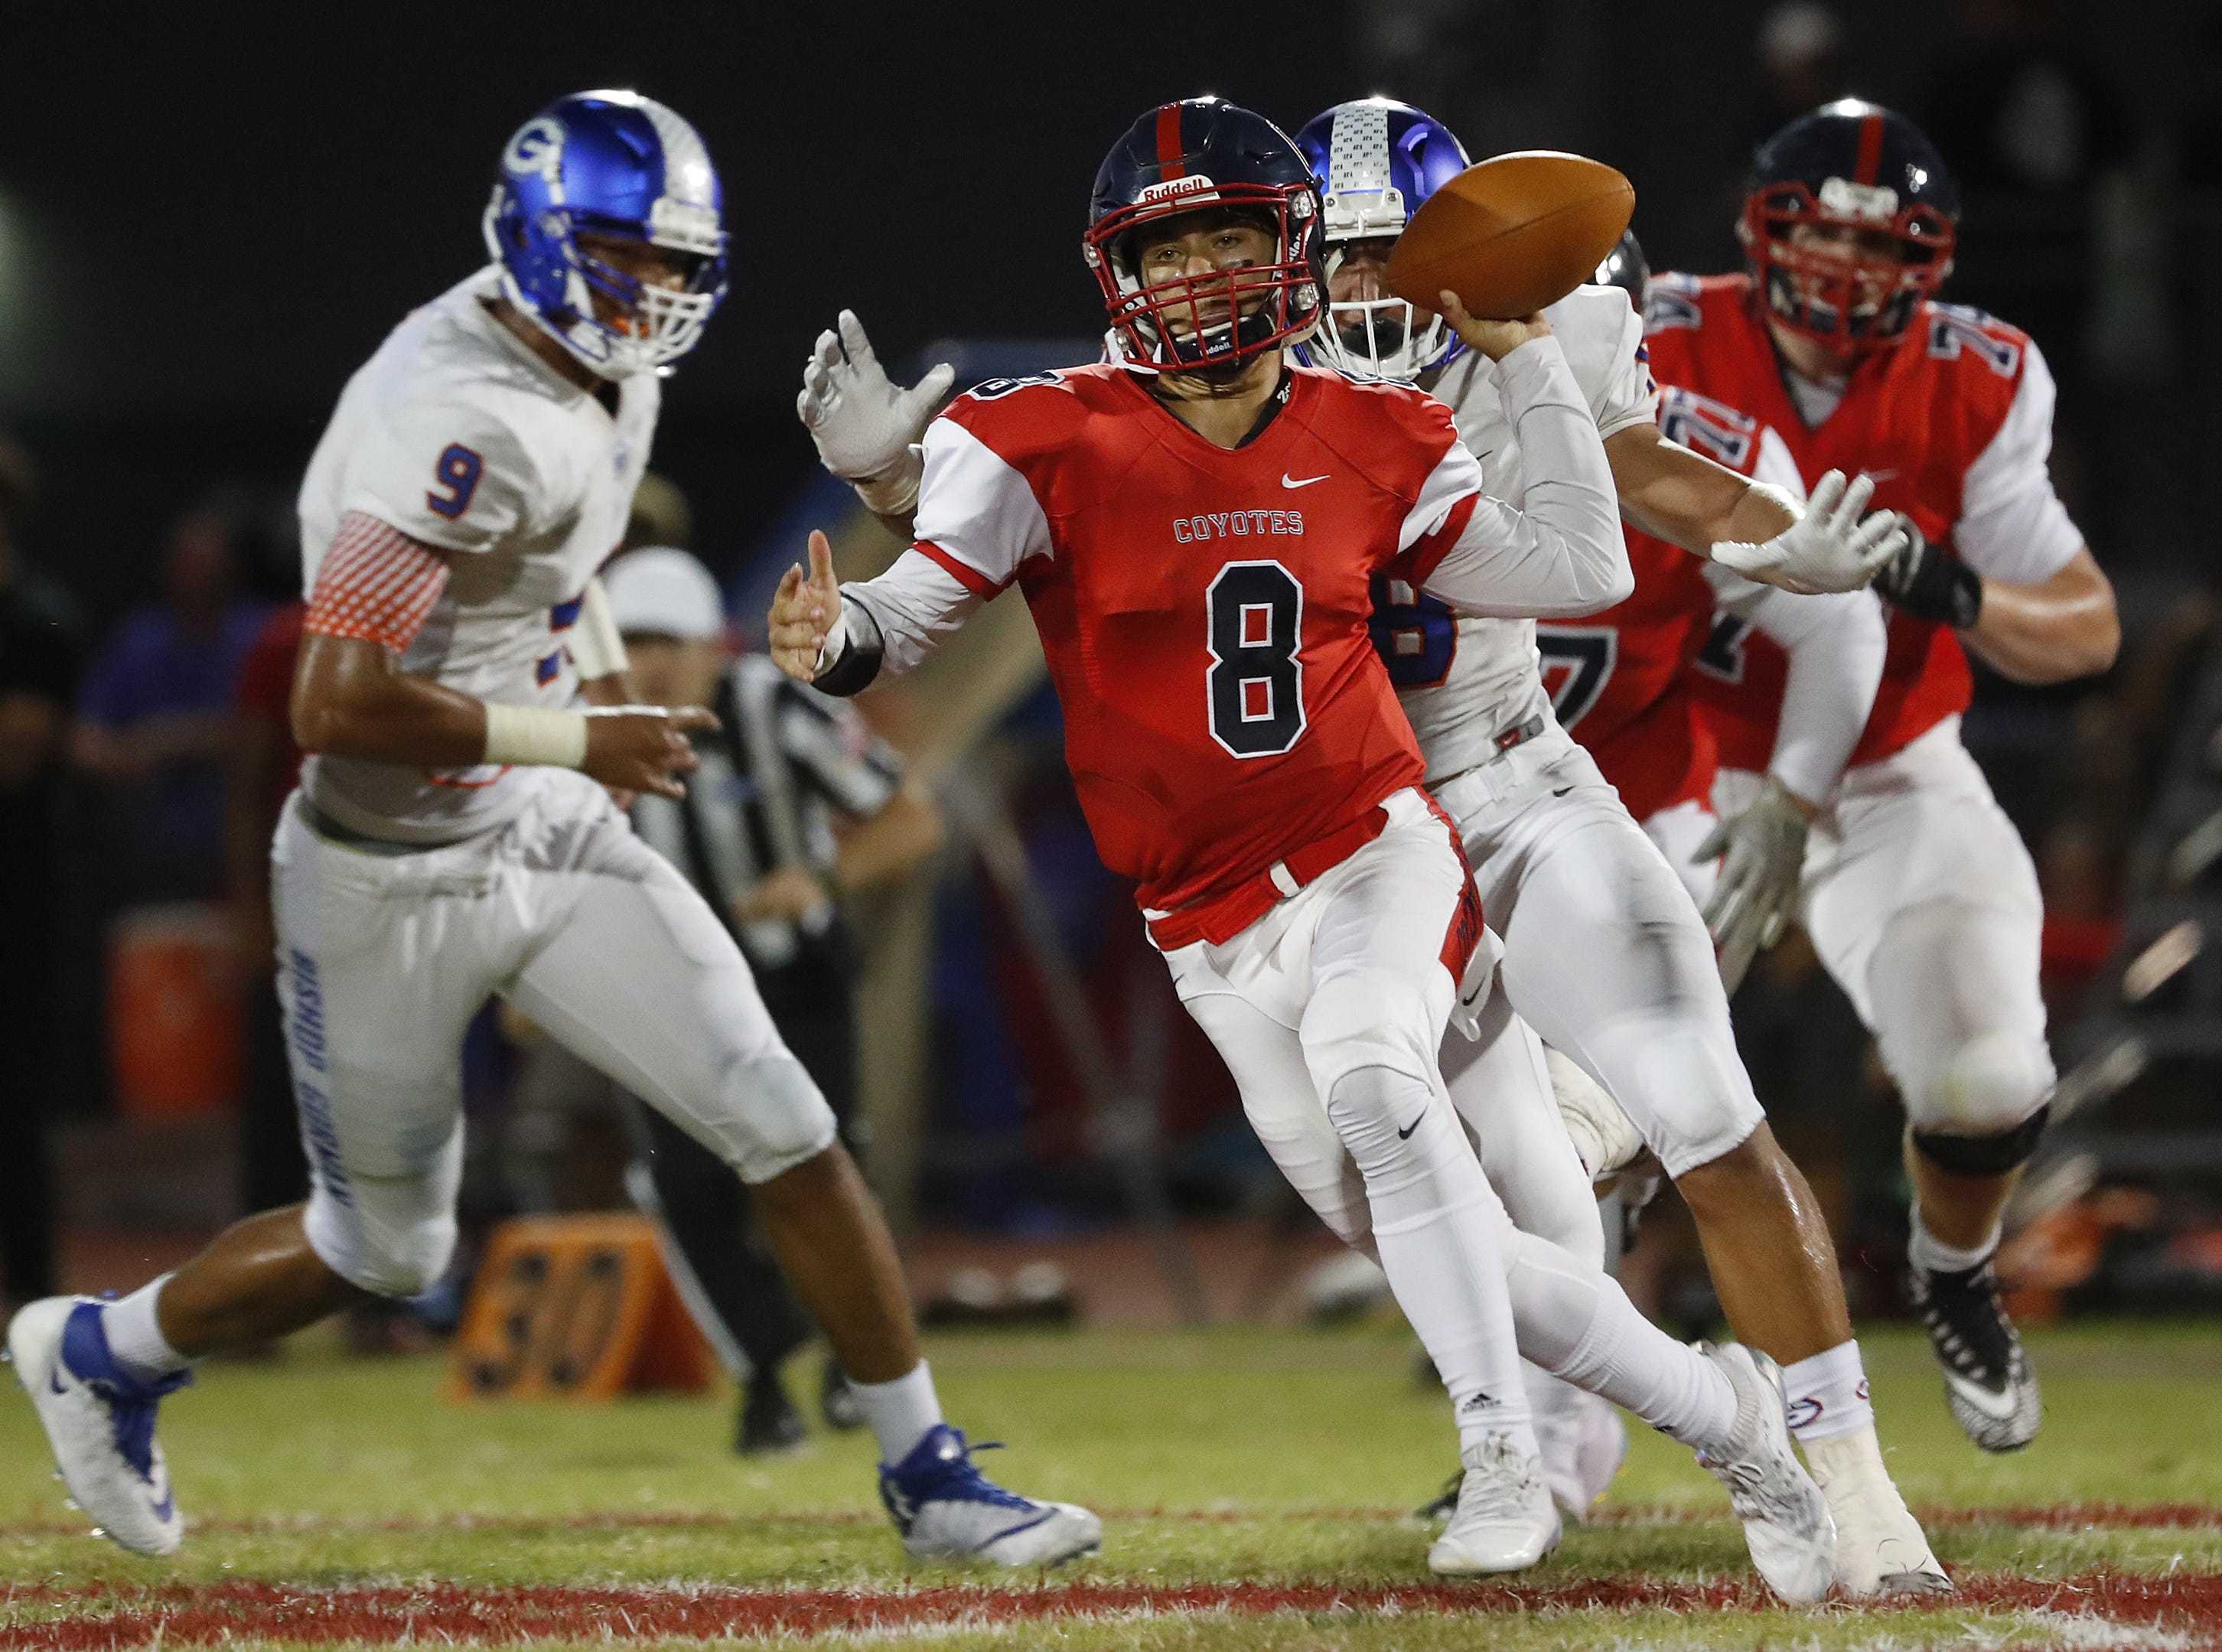 Centennial's Jonathan Morris throws a pass on the run under pressure from Bishop Gorman during a game at Centennial High School in  Peoria, Ariz. on Aug. 31, 2018.